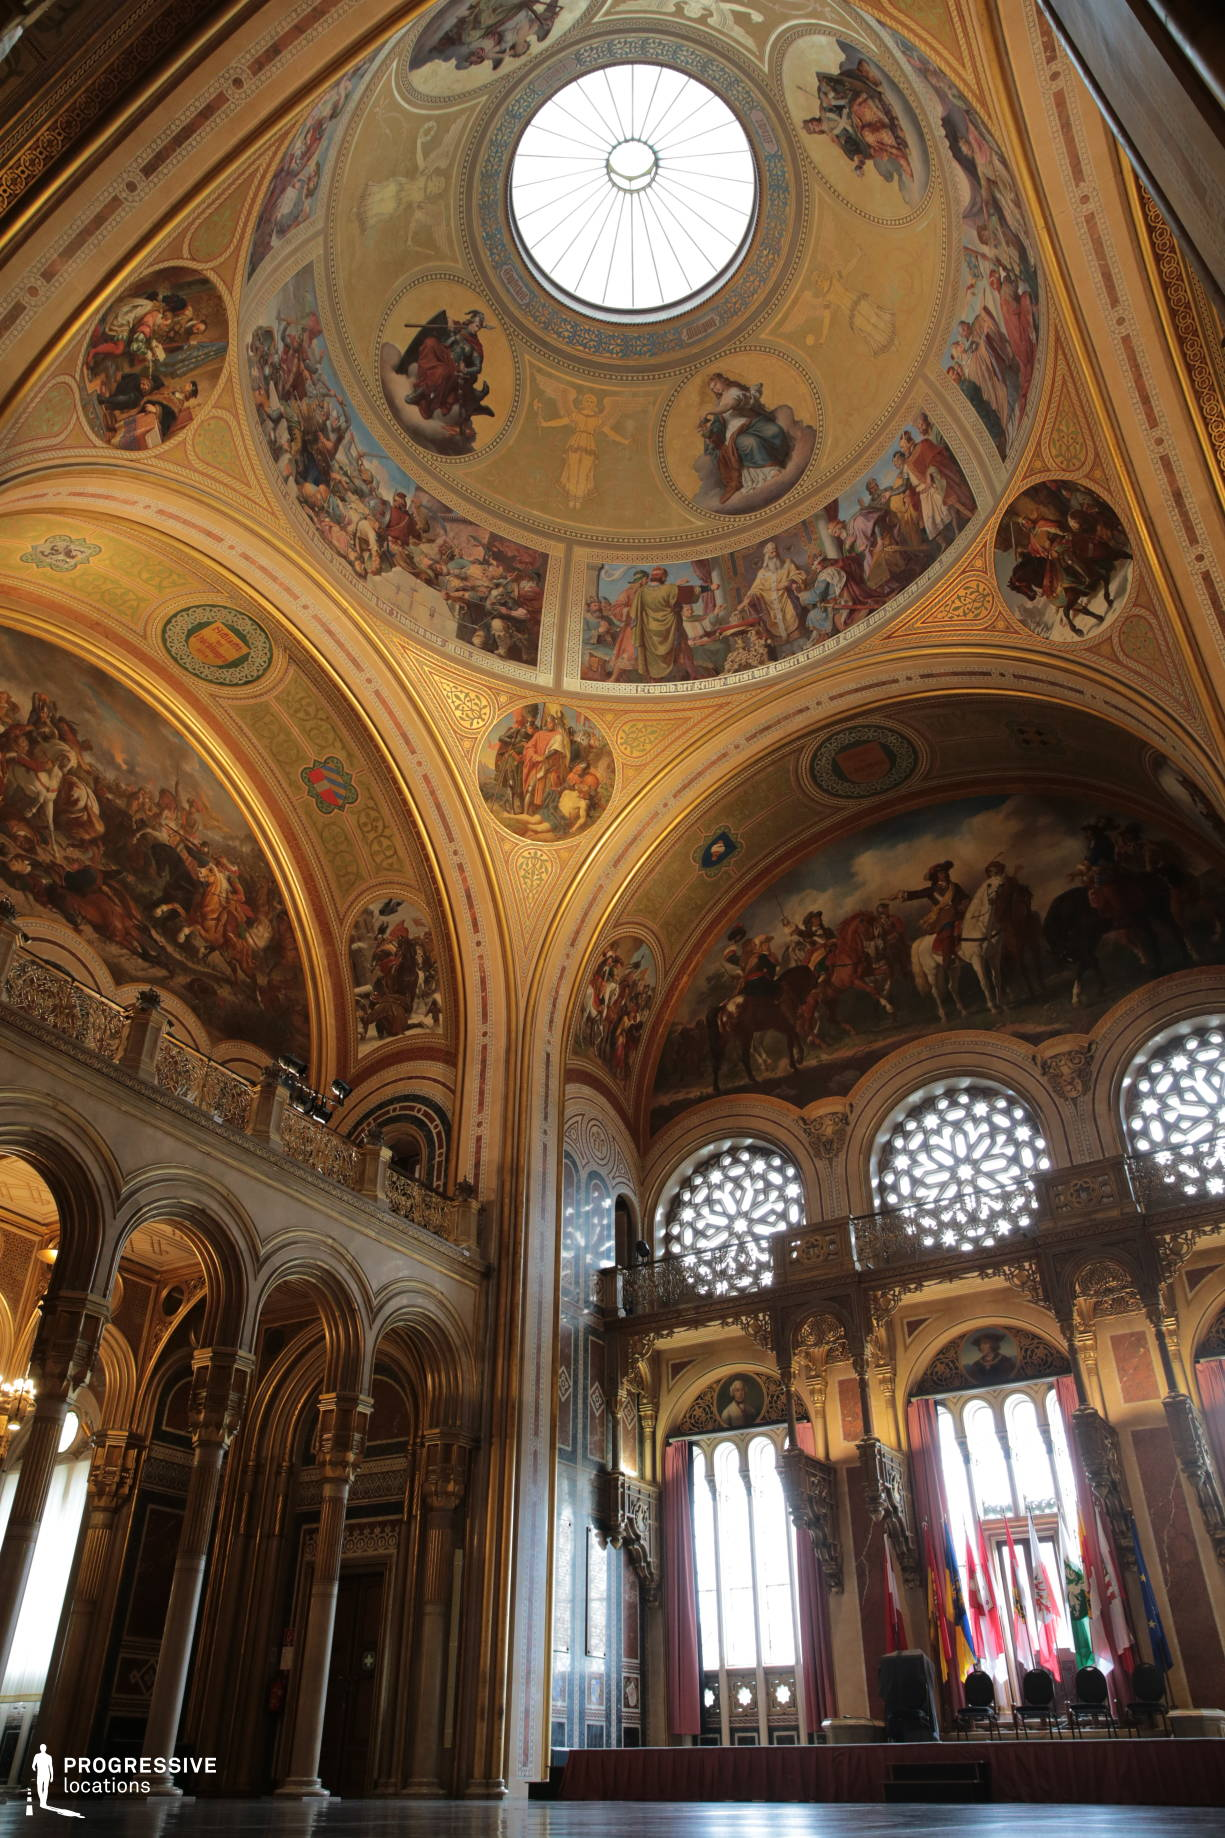 Locations in Austria: Main Hall Dome, Military History Museum